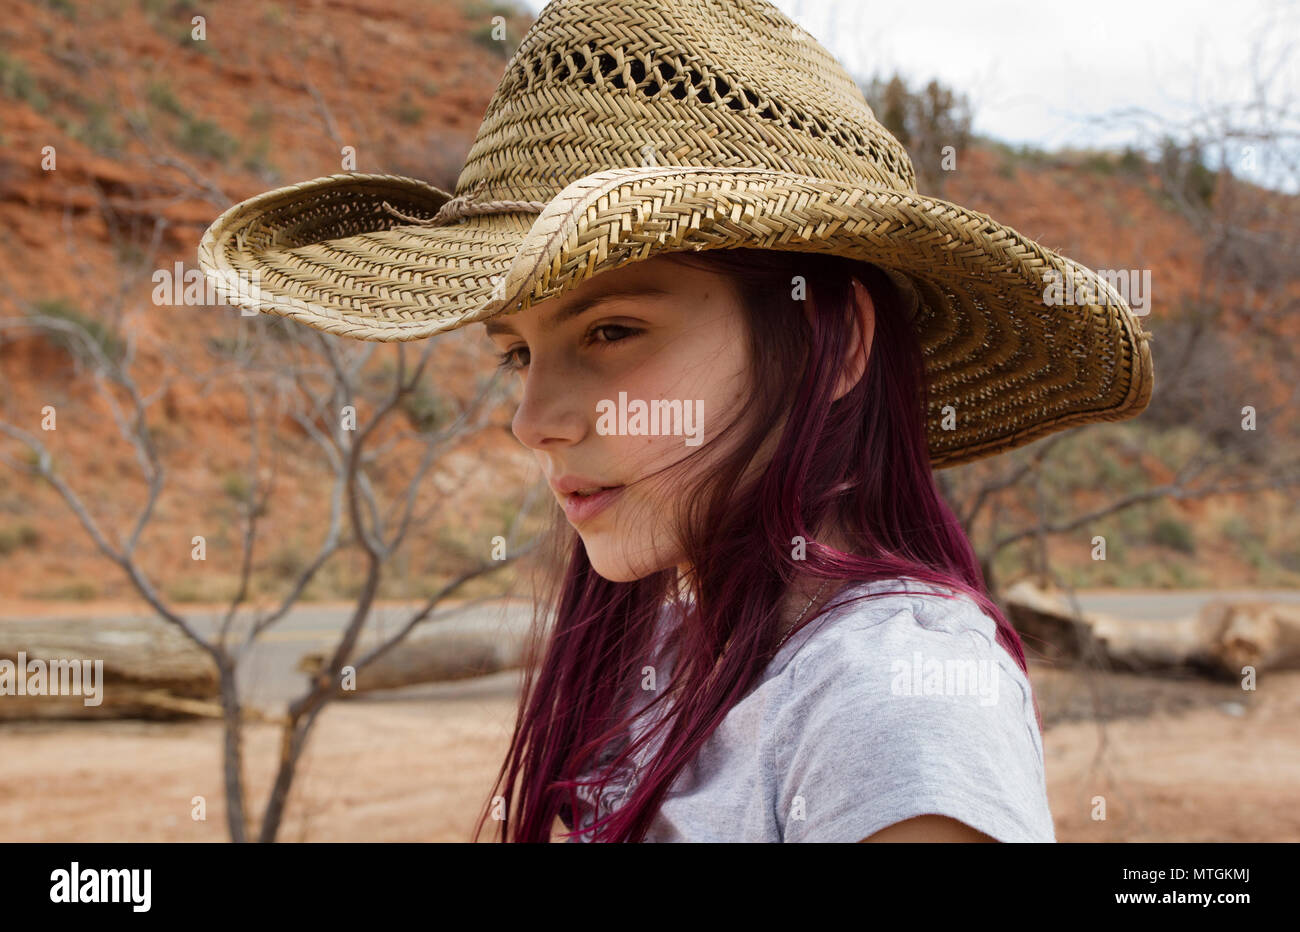 Texas Cowgirl Stockfotos & Texas Cowgirl Bilder - Seite 3 - Alamy